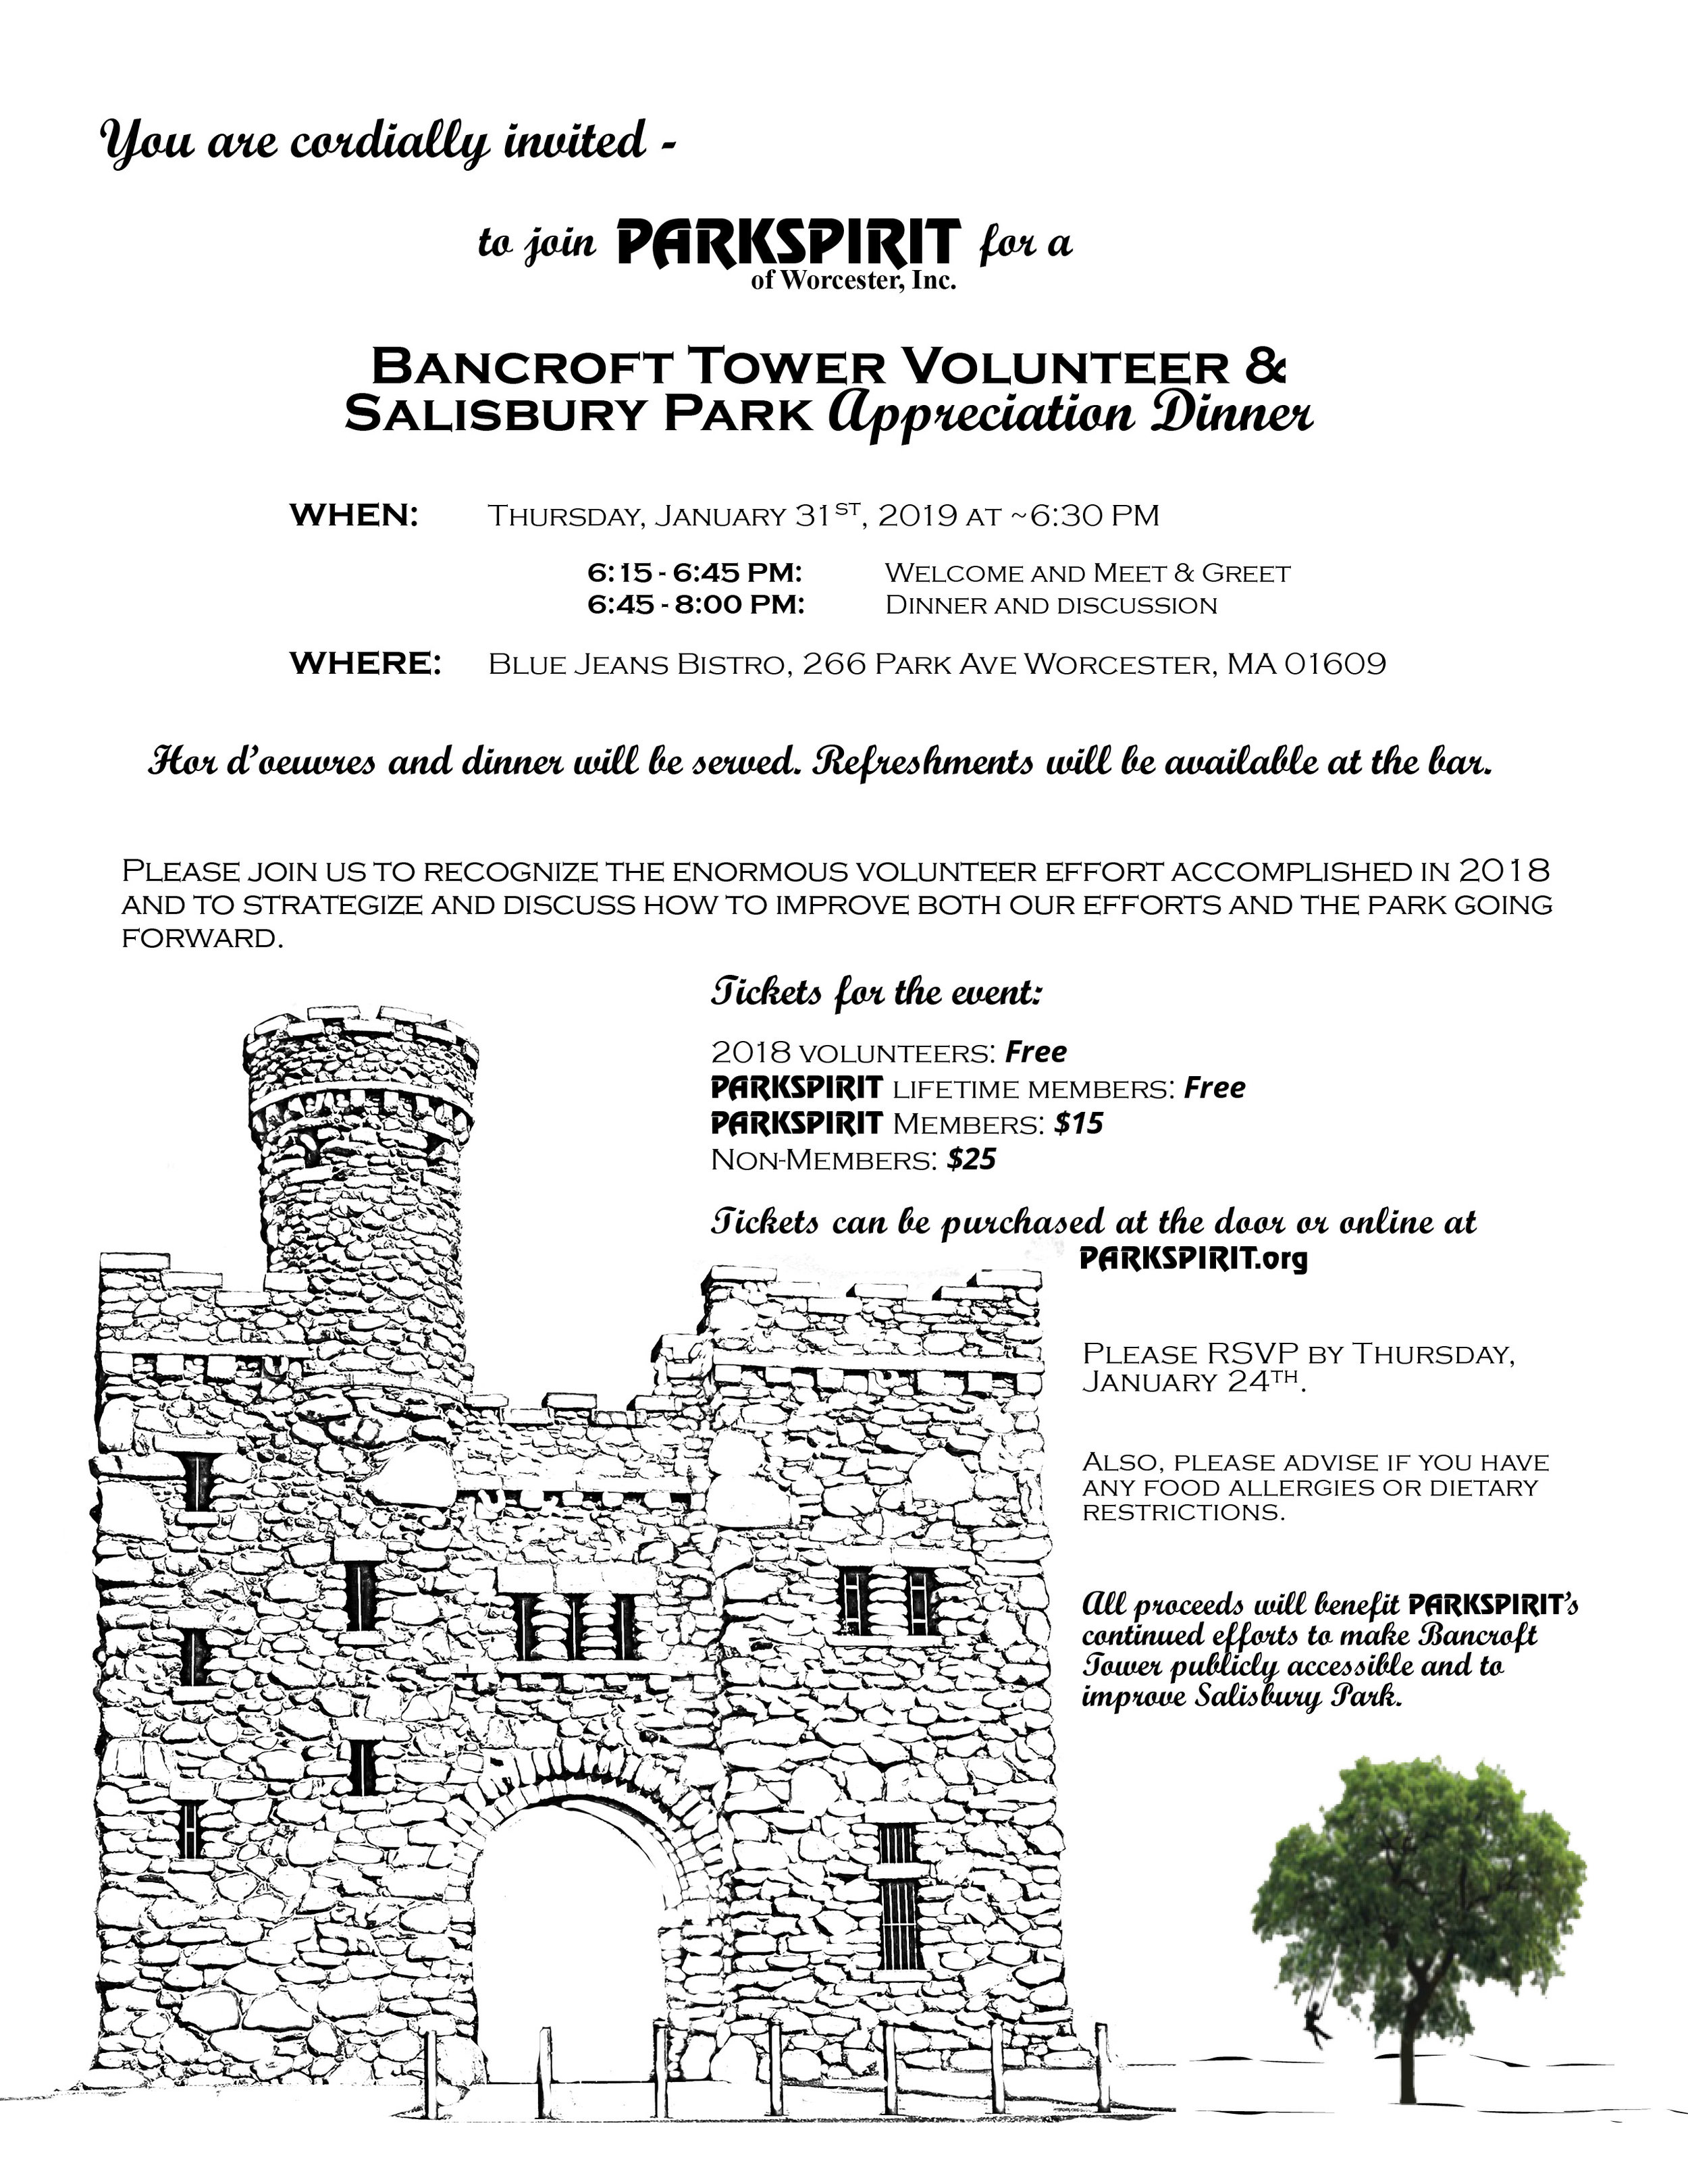 Bancroft Tower Volunteer & Park Appreciation Dinner Invitation 12262018.jpg